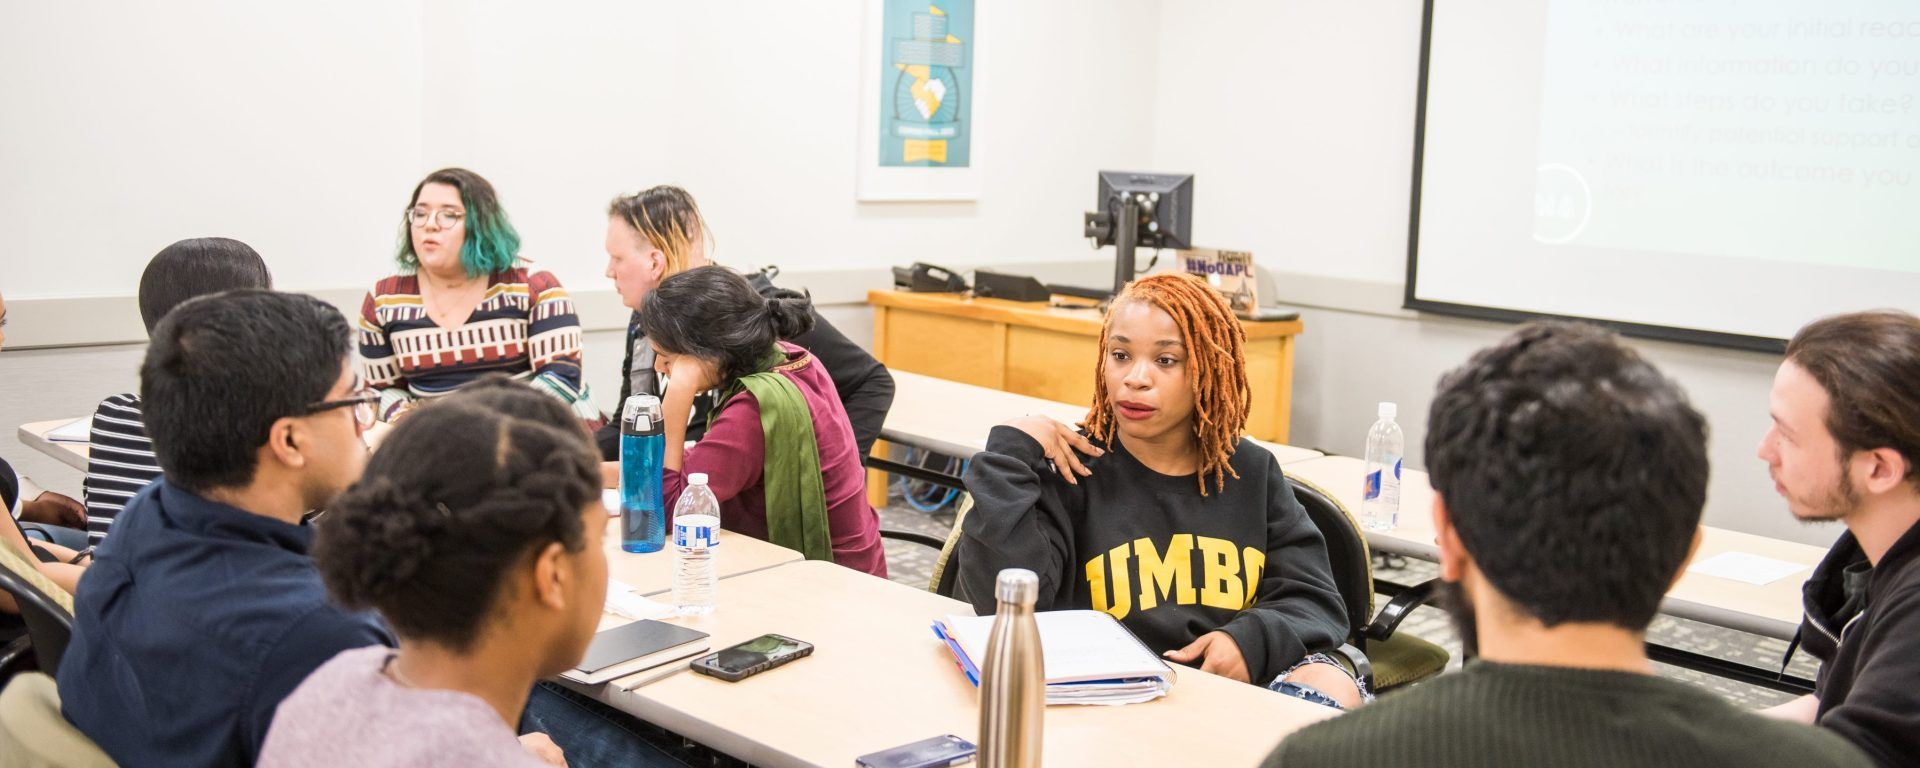 Dr. Adrienne Keene workshops with members from the UMBC community.